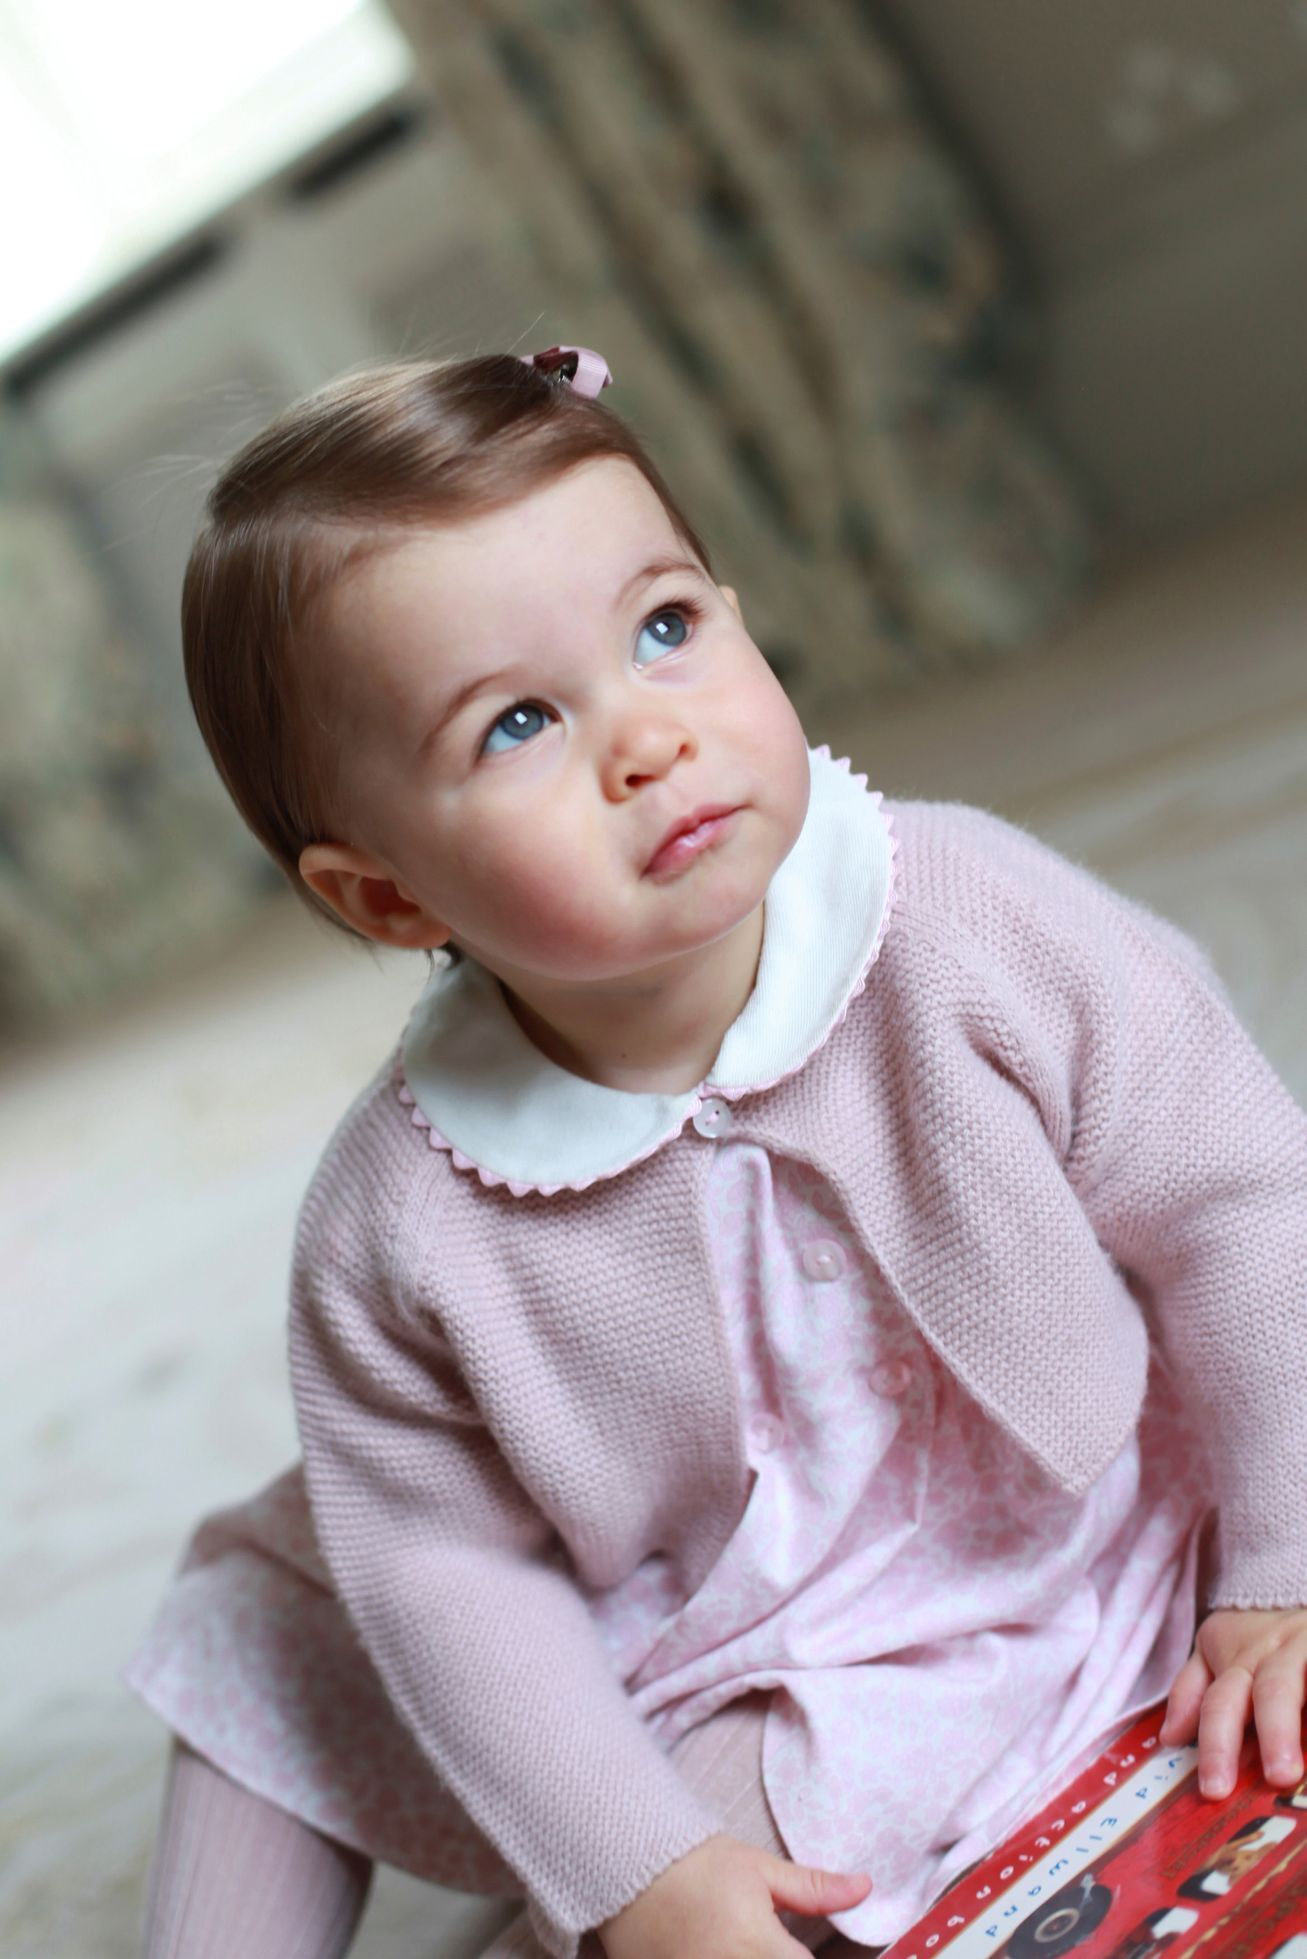 Britain's Princess Charlotte poses for a photograph in this undated photograph taken by her mother, Catherine, Duchess of Cambridge, at Anmer Hall in Norfolk